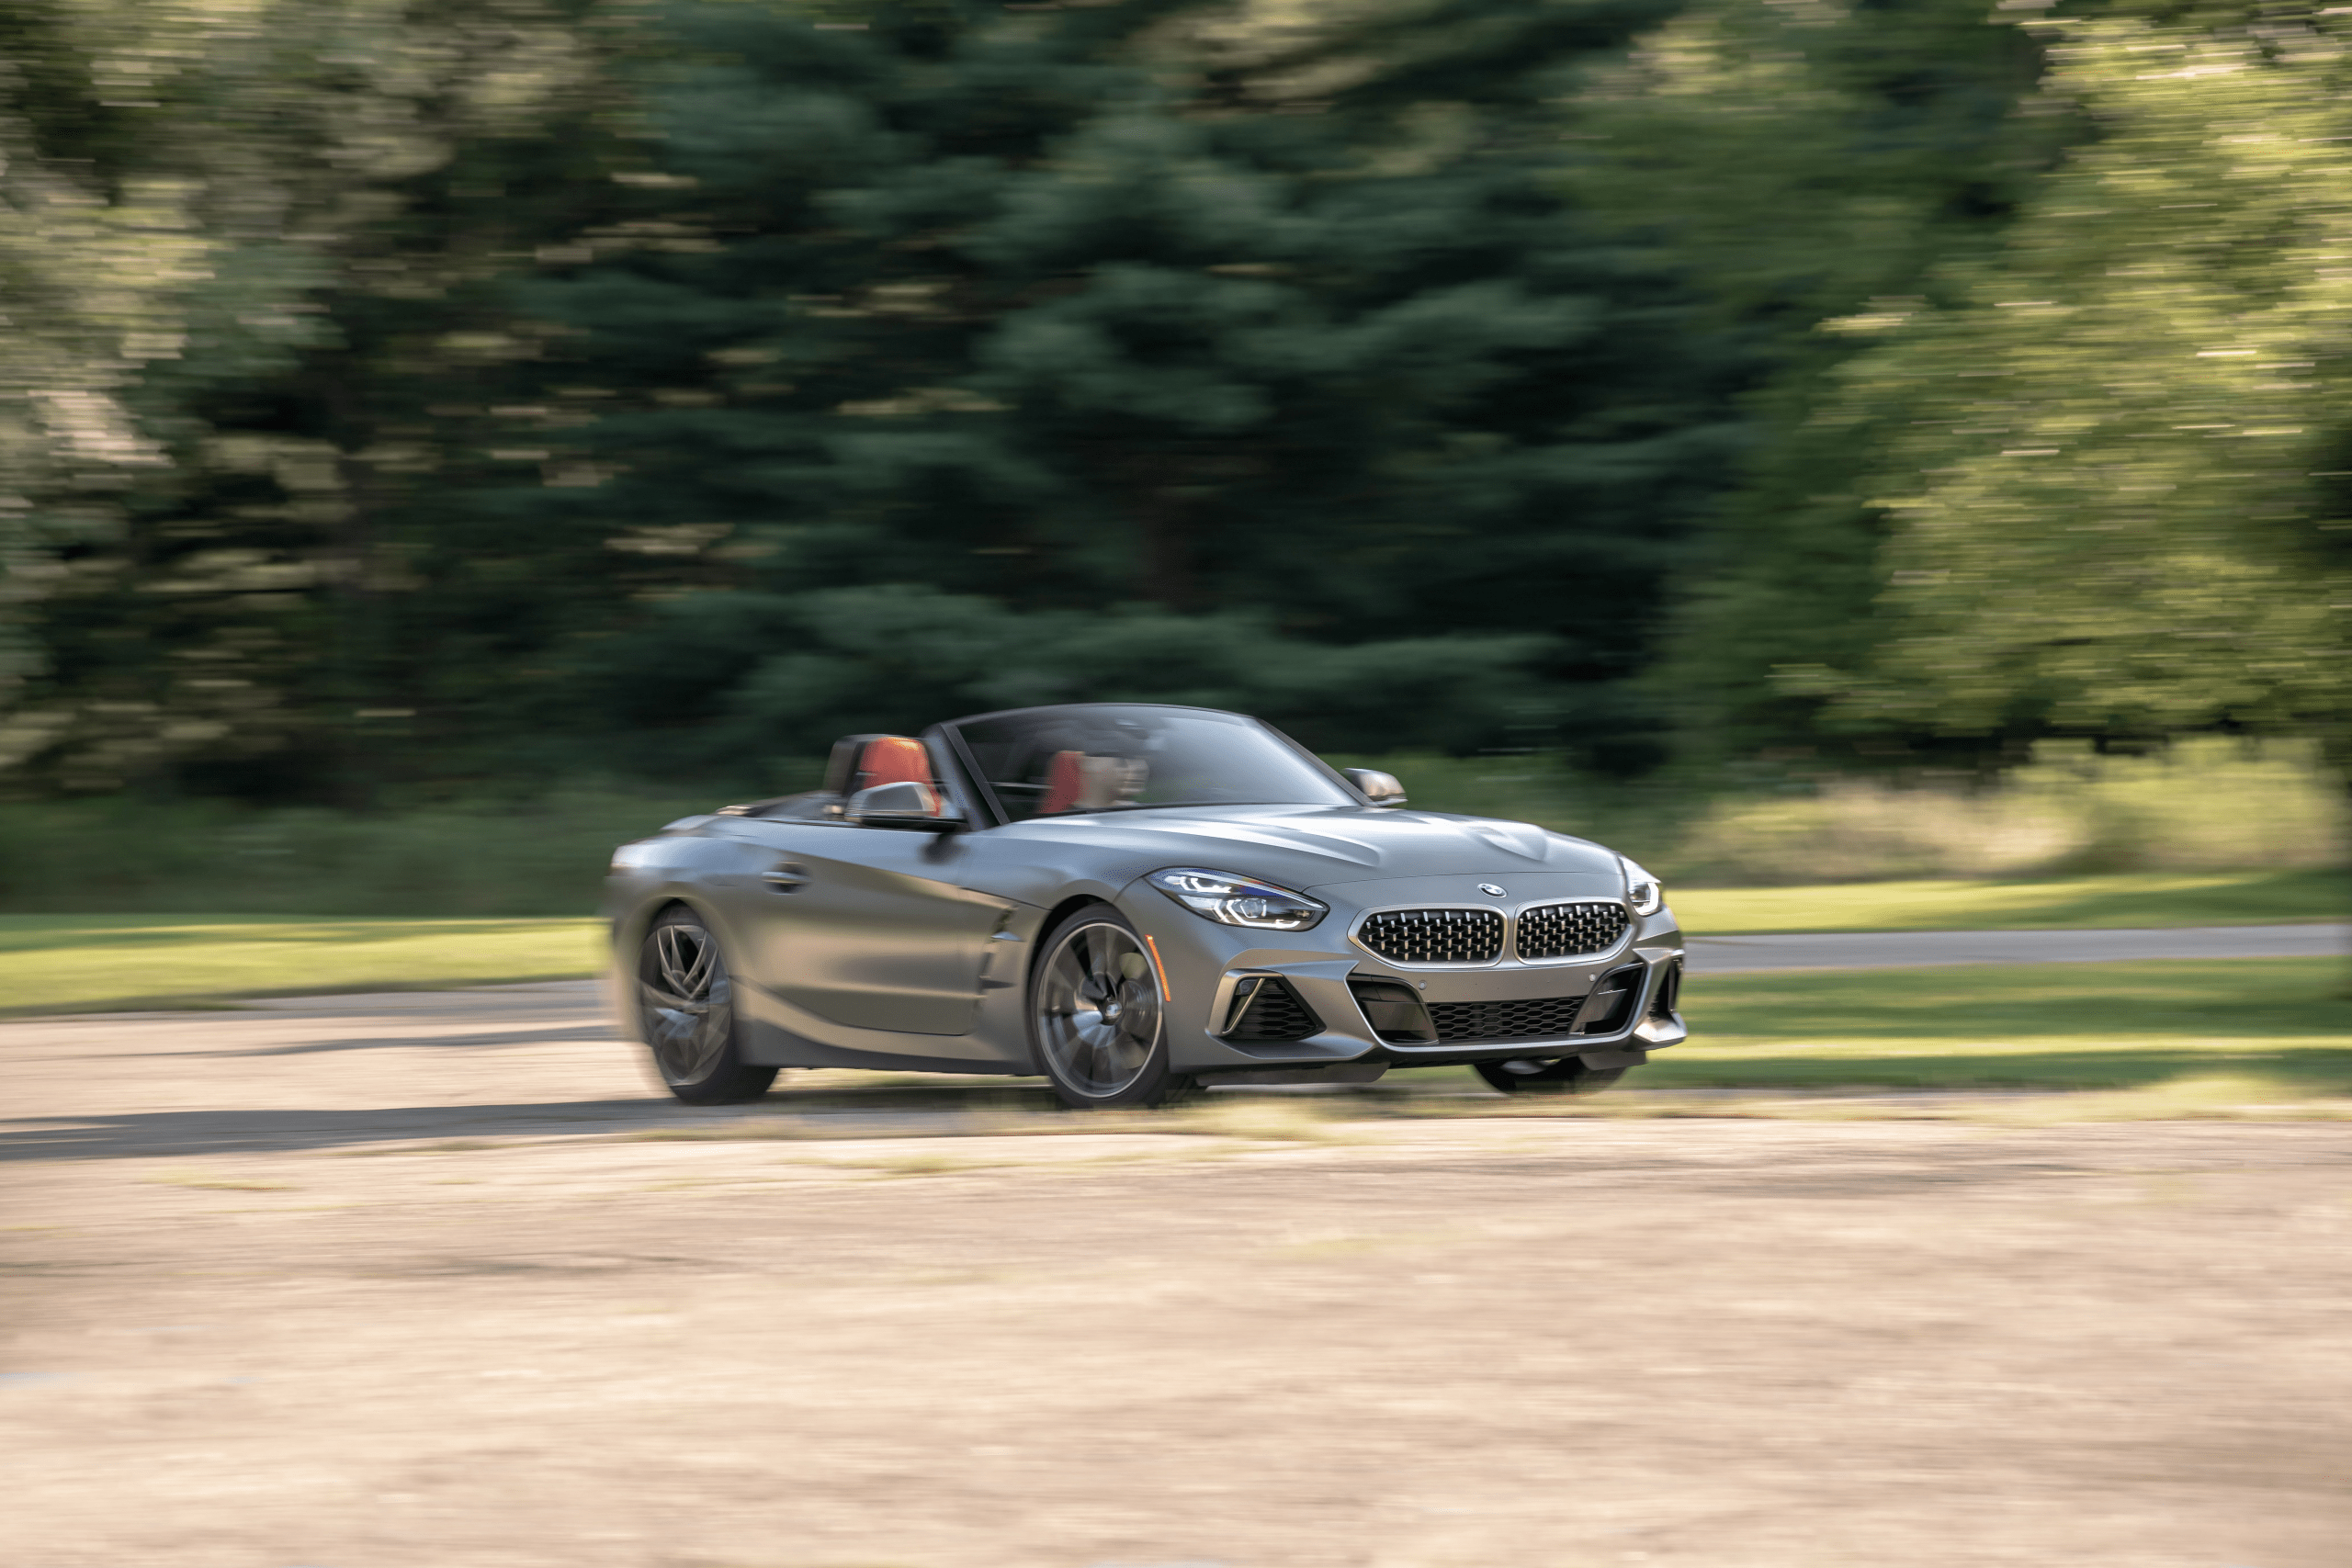 2021 Bmw Z4 Concept And Review In 2020 Bmw Z4 Roadster Bmw Z4 Roadsters